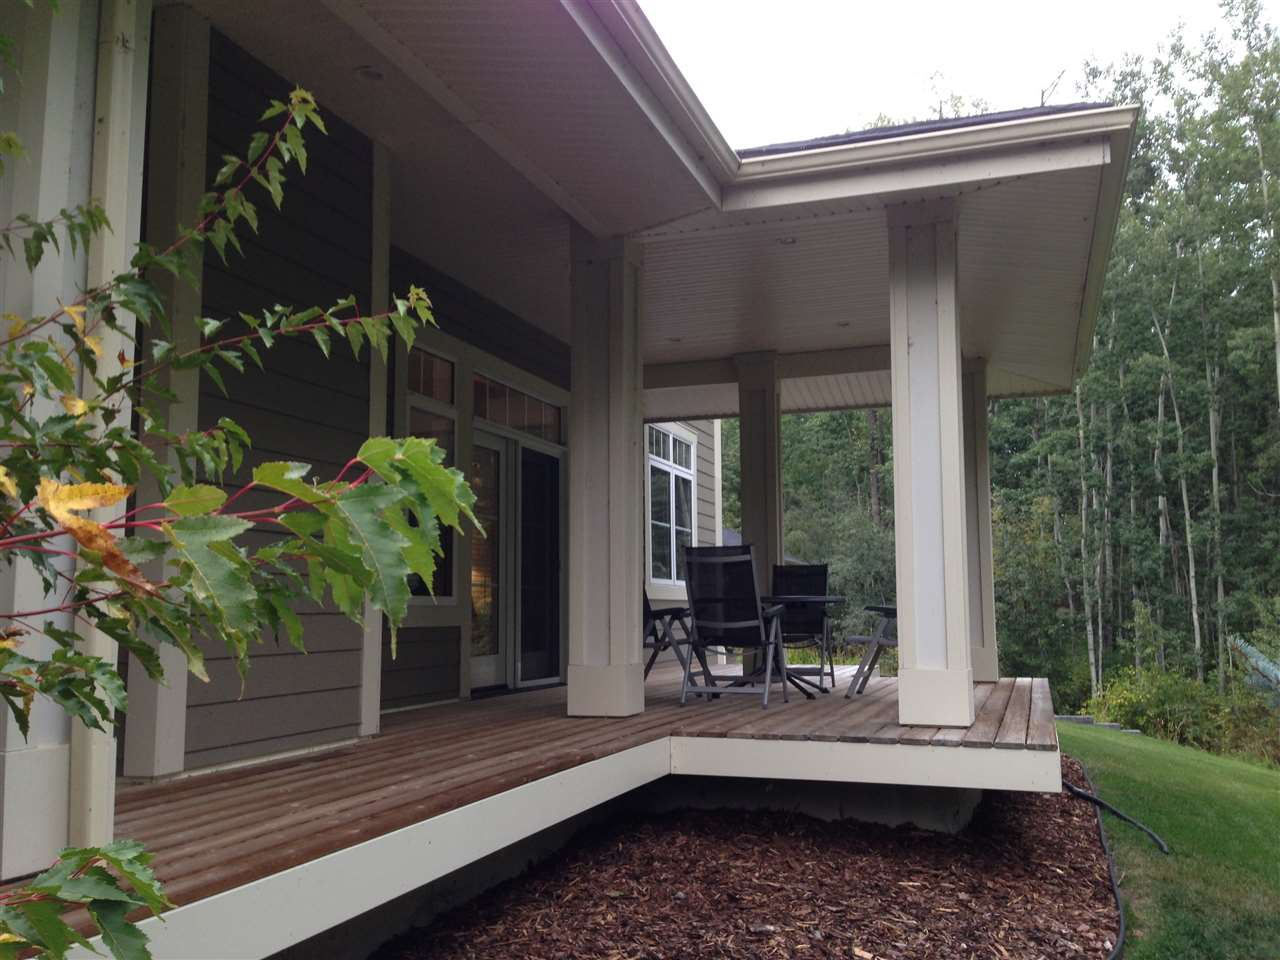 the verandah facing onto a naturally treed creek